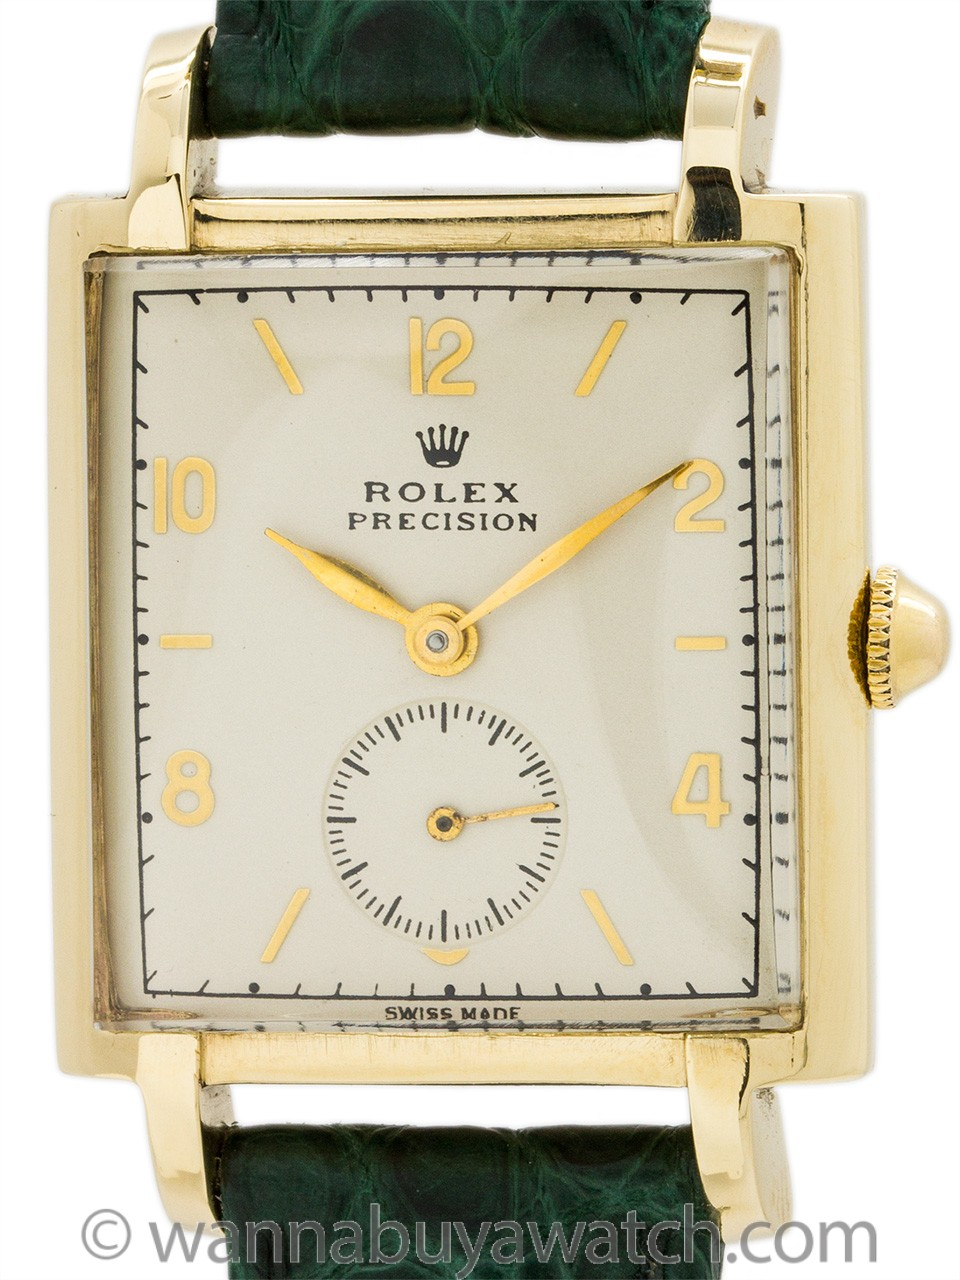 Rolex ref 4029 9K Gold Manual Wind Dress Model circa 1940's